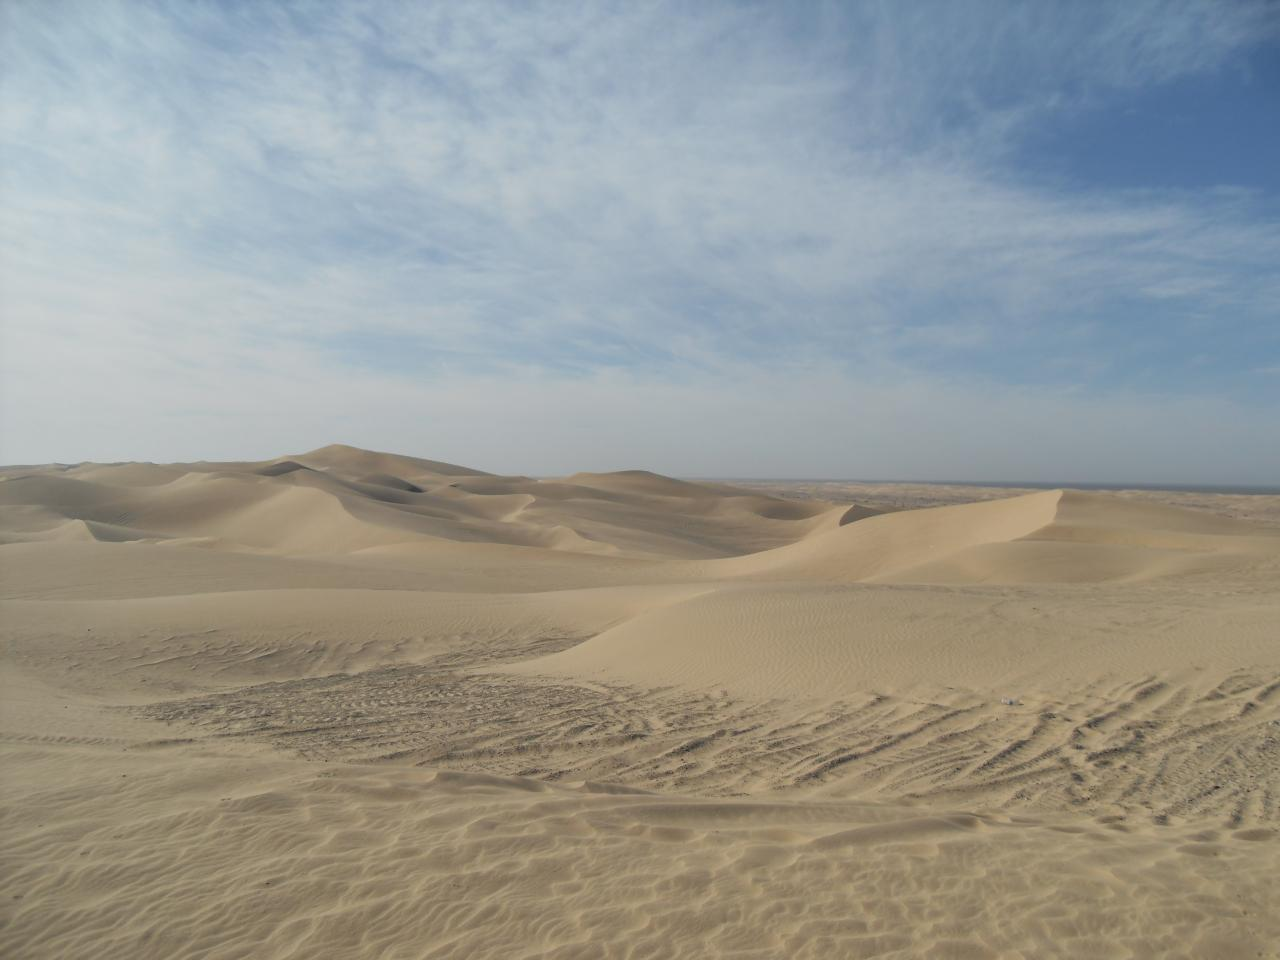 Glamis sand dunes. So peaceful.